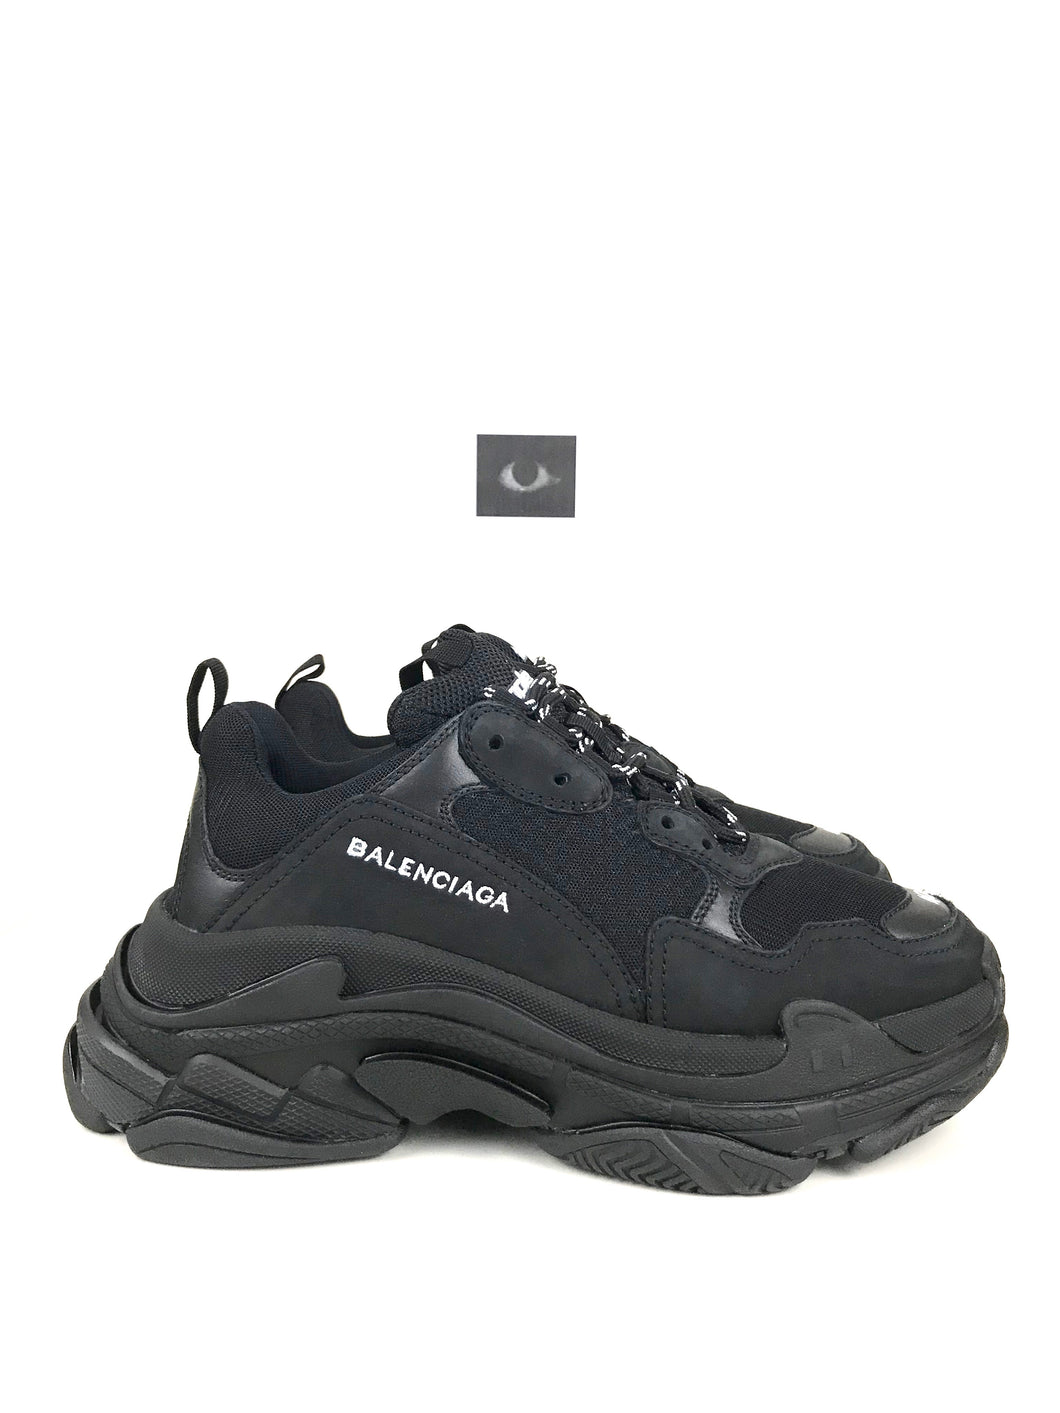 Balenciaga Triple S Sneakers F/W17 - Clean Black (Made in Italy)